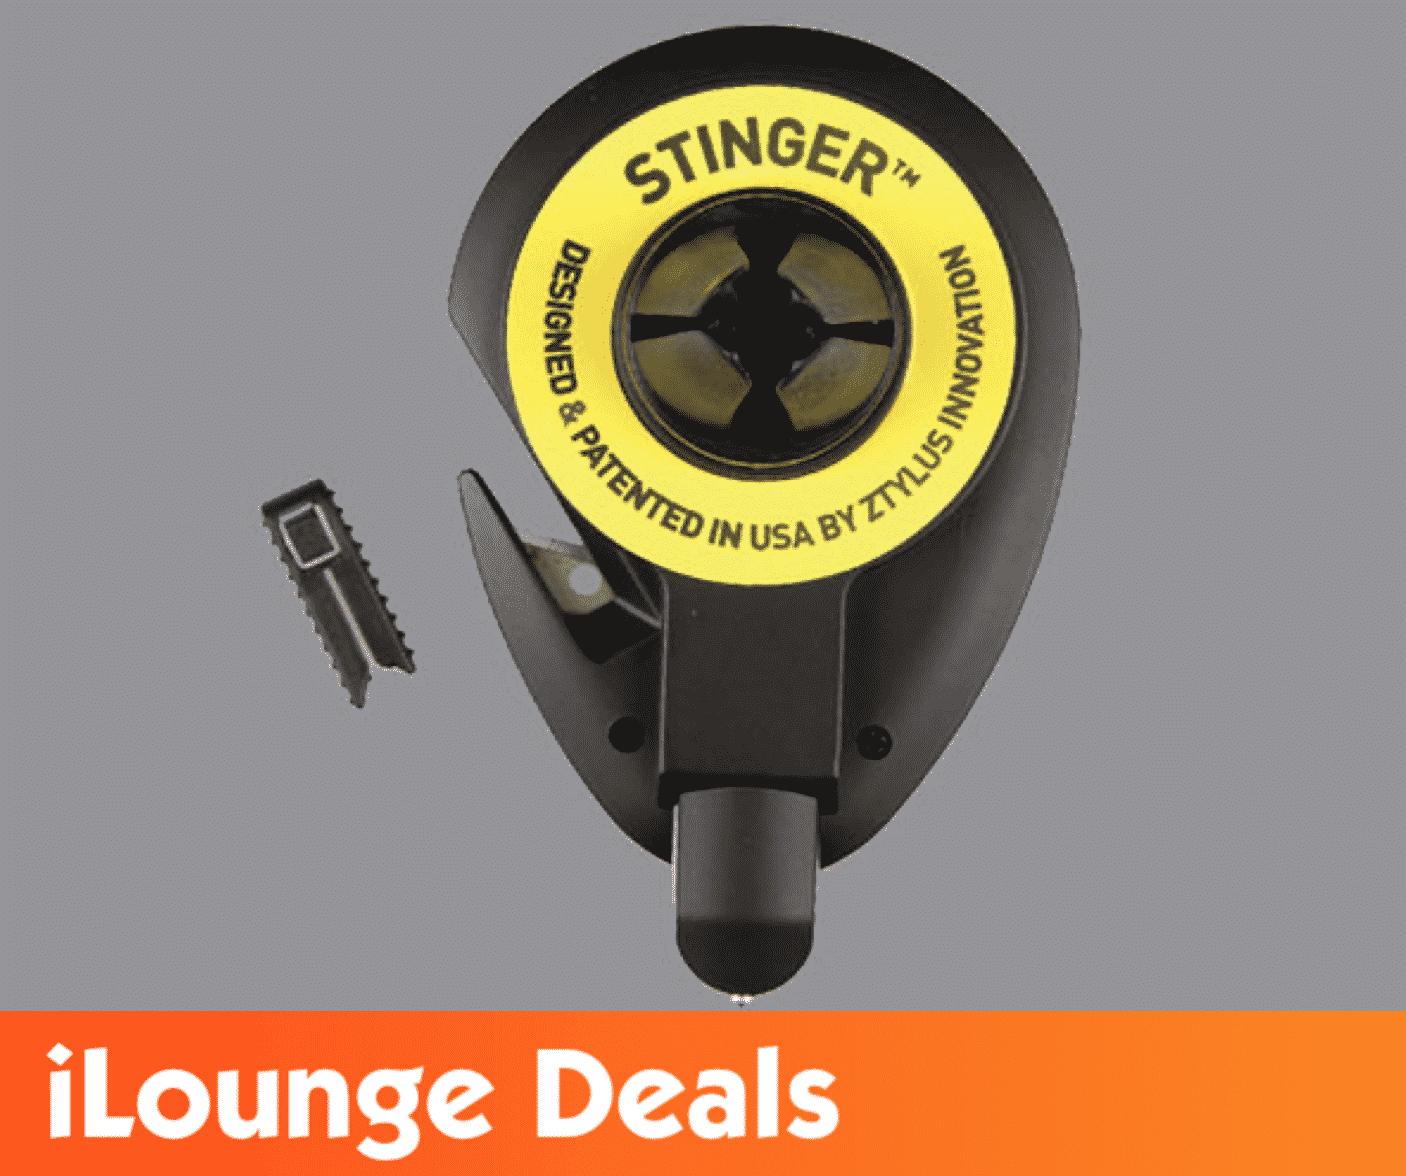 Stinger™ Car Vent Mount Phone Holder & Emergency Tool